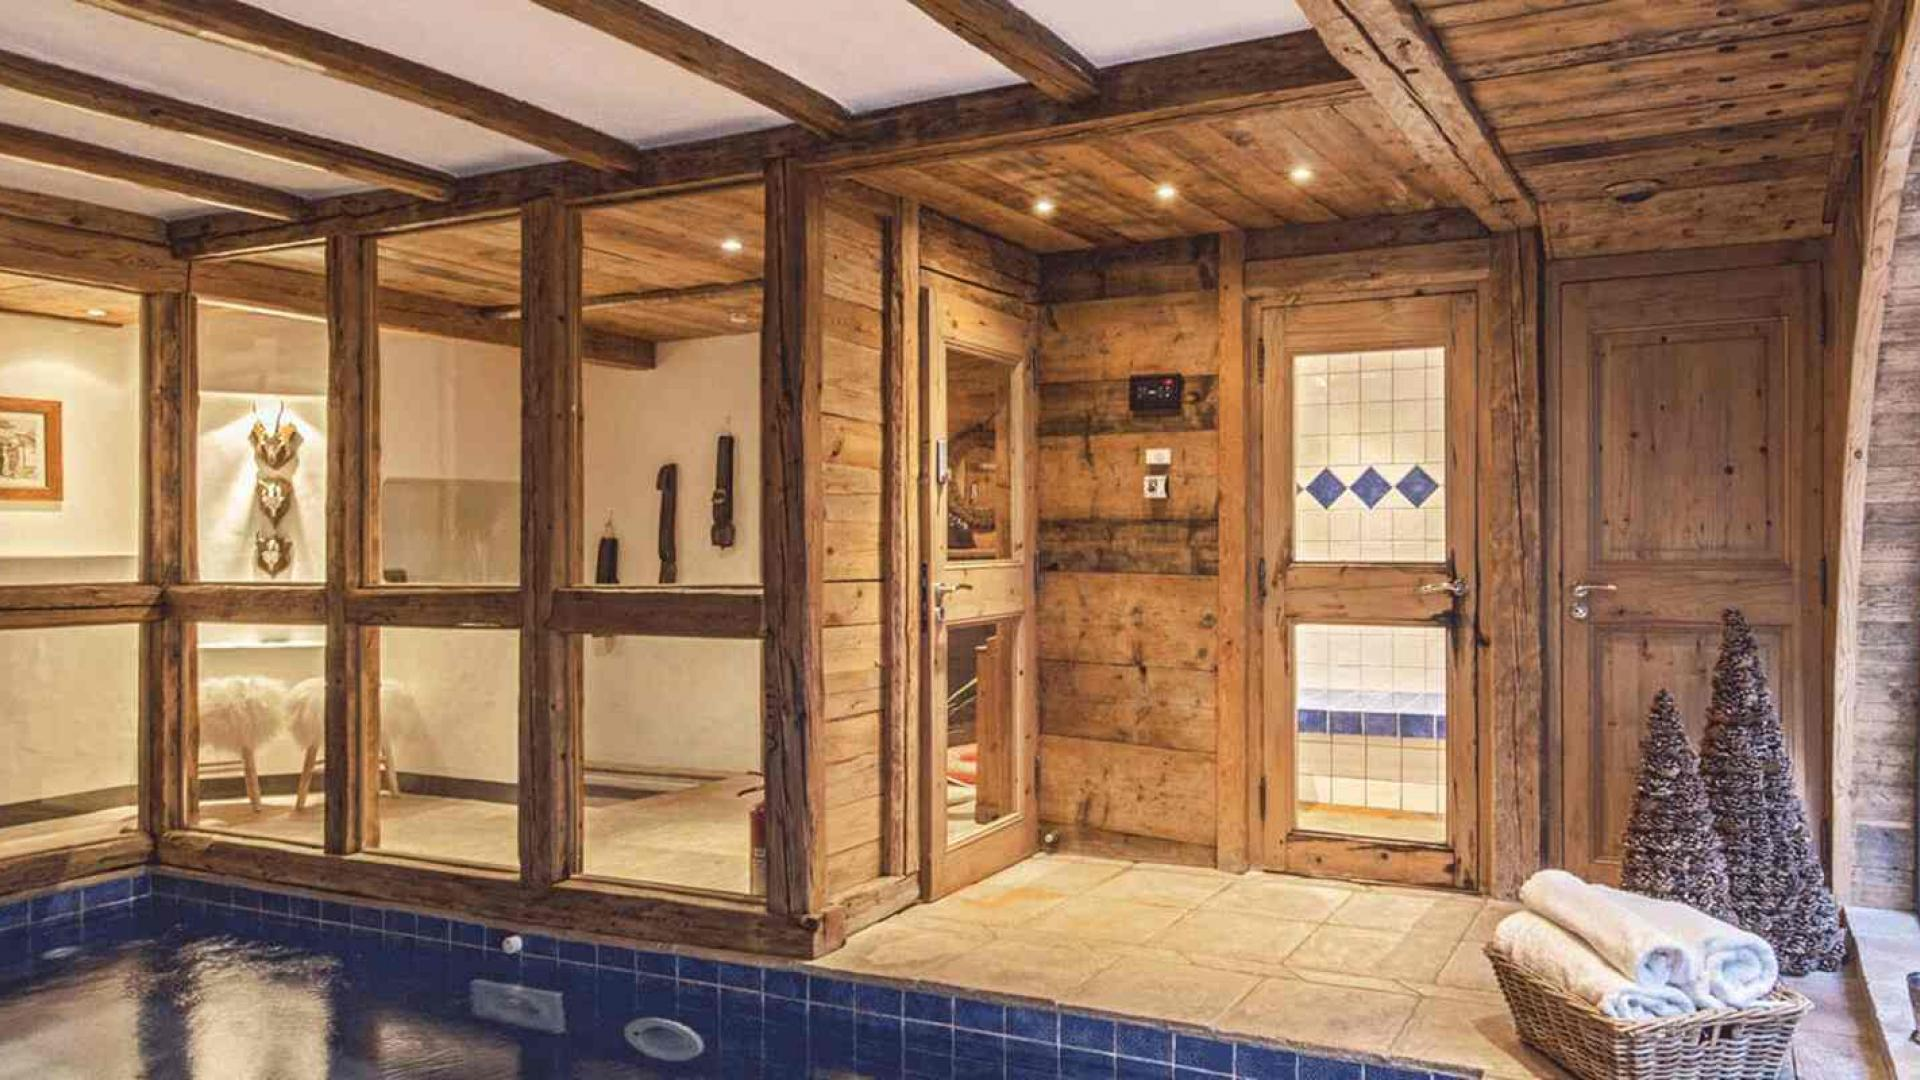 Chalet Alice 4 - Location chalets Covarel - Val d'Isère Alpes - France - Piscine